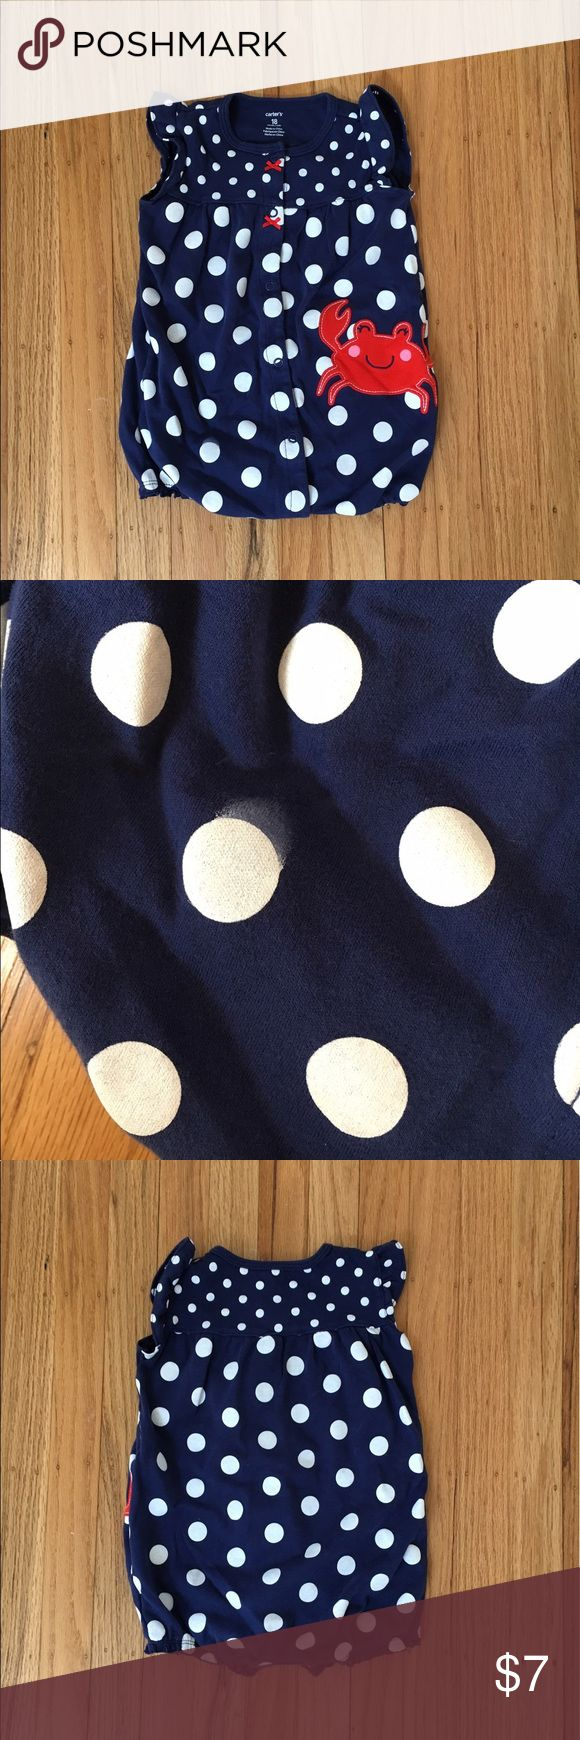 Crab Romper Blue Polka Dots Worn once so fabric like New. Hmmm actually I don't think ever worn lol There is a manufacturing flaw on one Polka Dot (light paint smear, see pic). Smoke and Pet Free Home. Carter's Bottoms Jumpsuits & Rompers